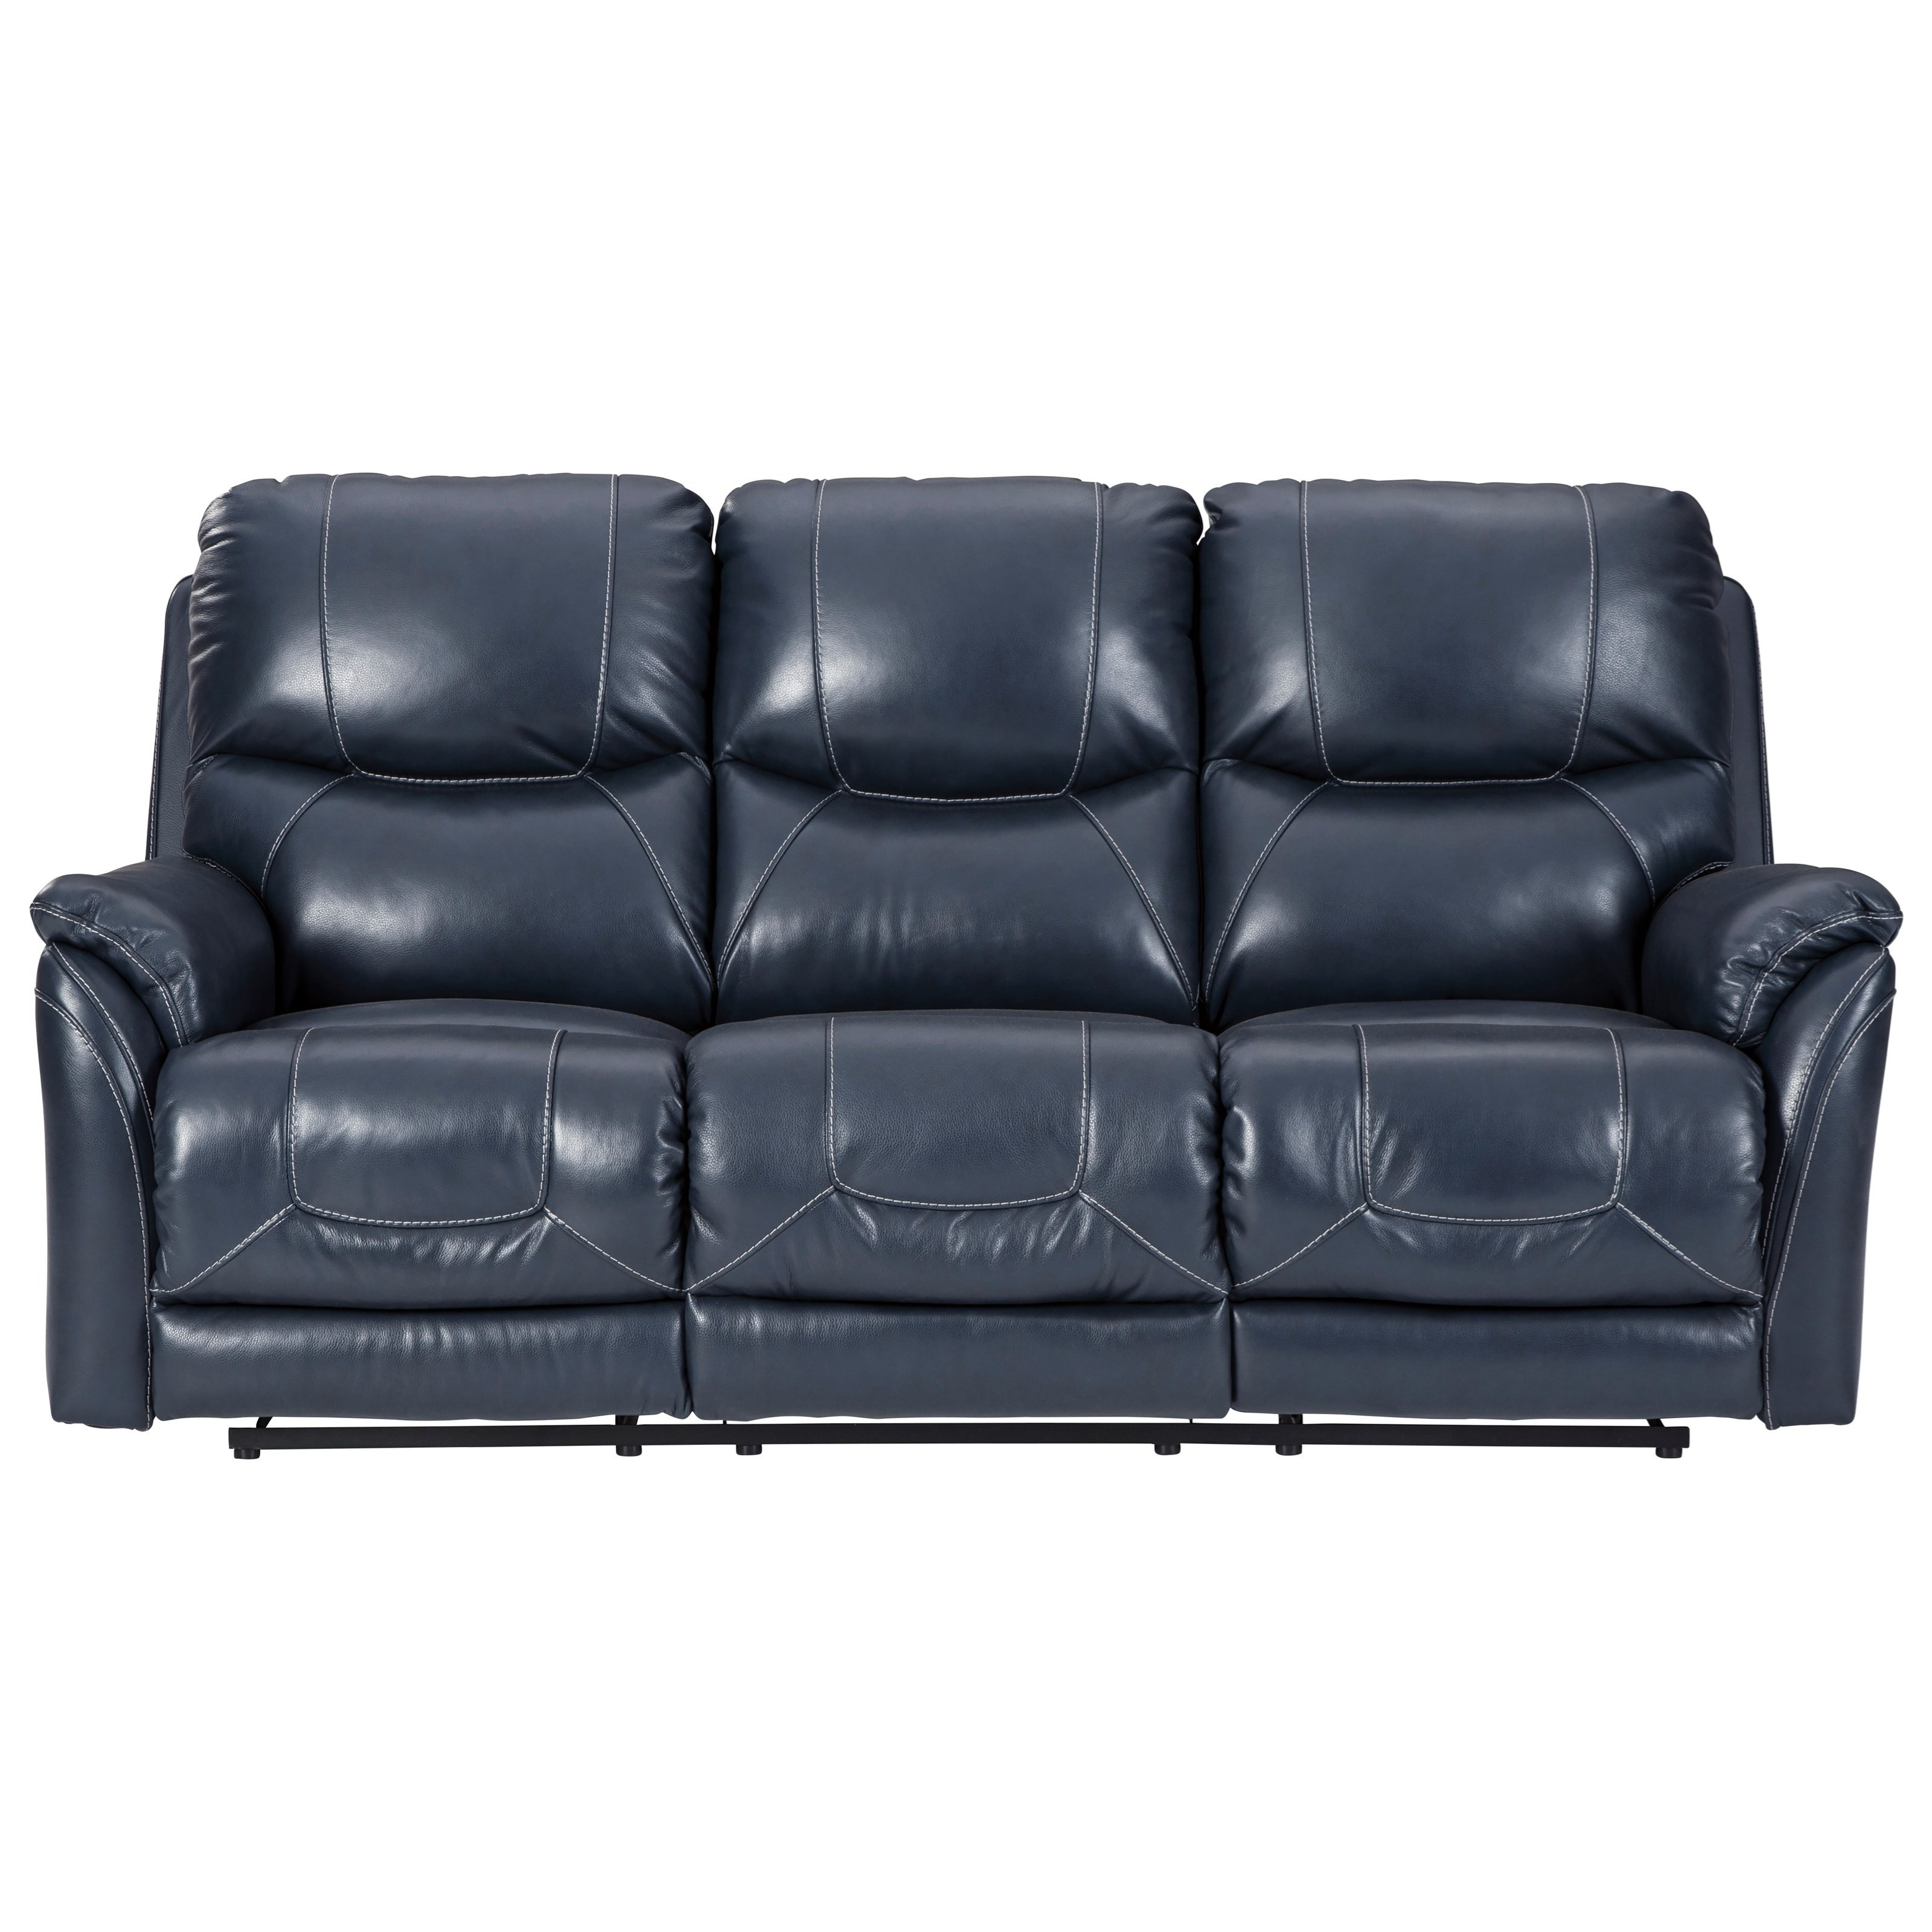 Dellington Power Reclining Sofa with Adjustable HR by Ashley (Signature Design) at Johnny Janosik